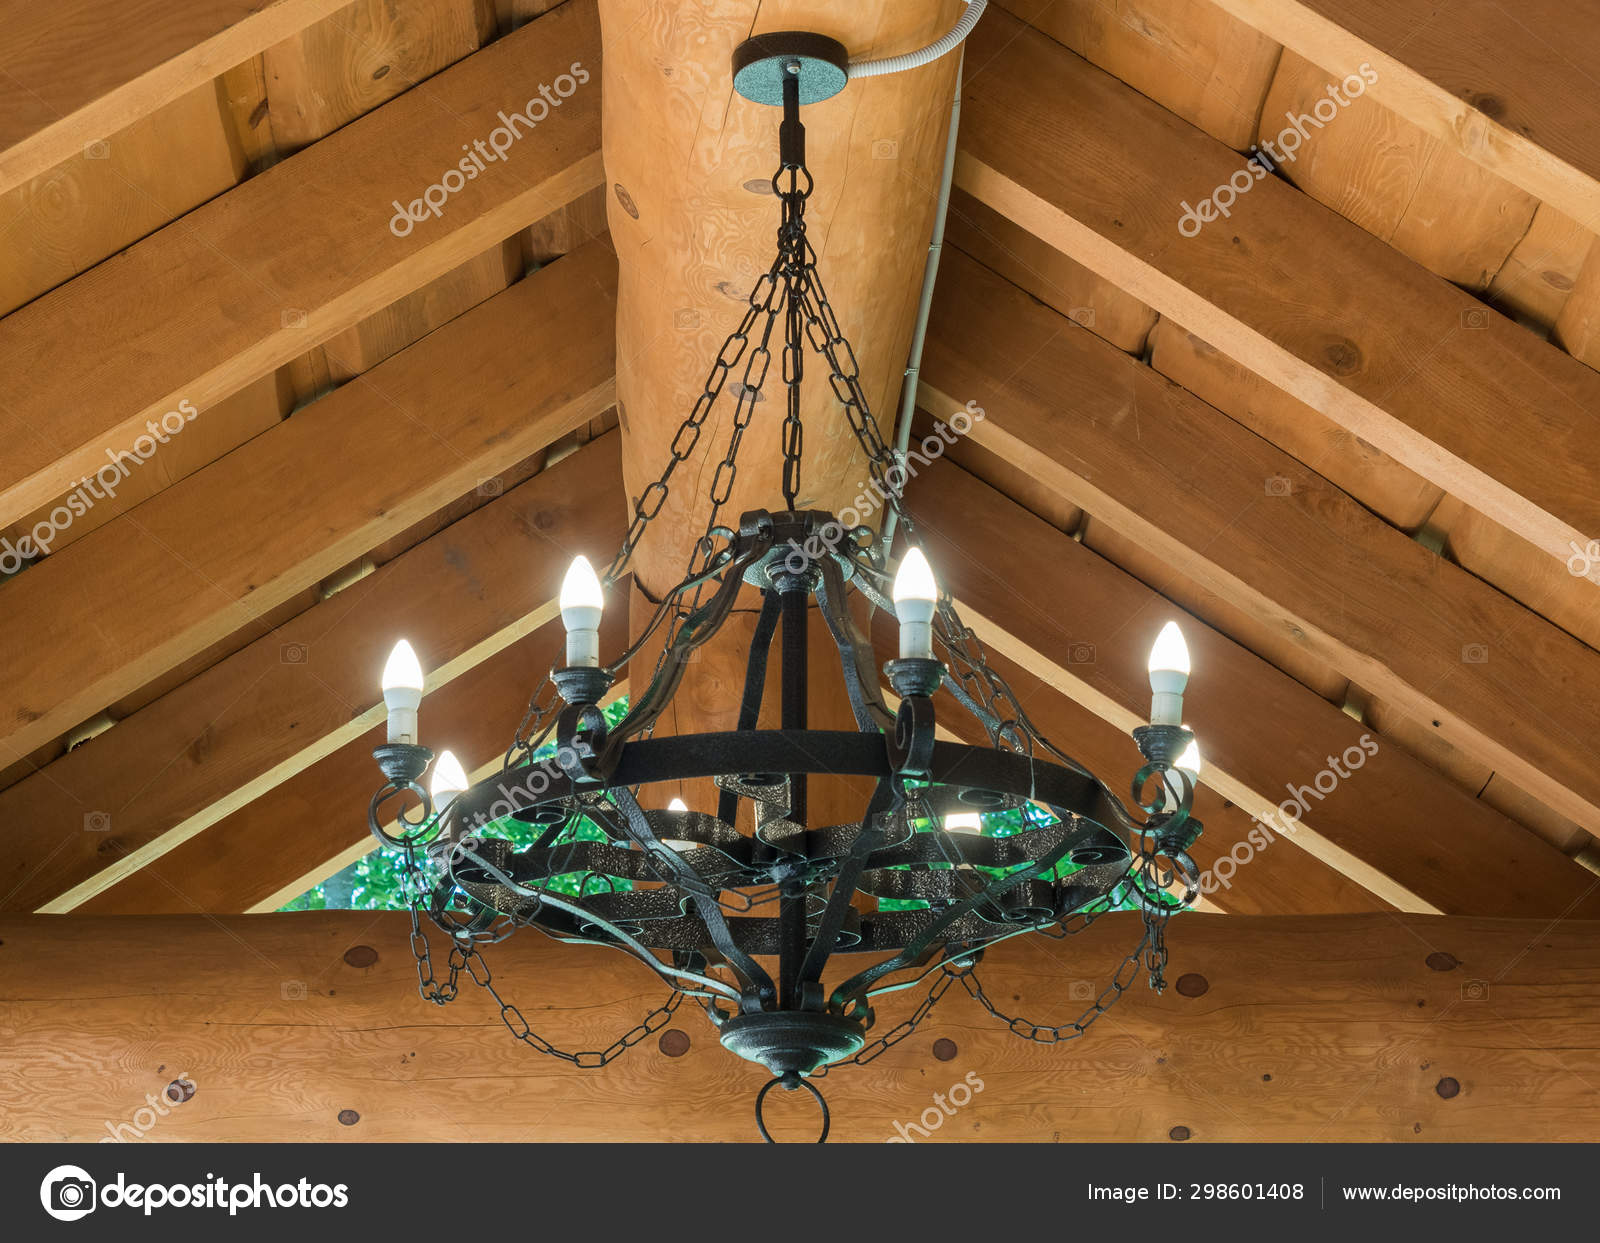 Round Black Wrought Iron Chandelier With Bulbs Weighs In Summer House Stock Photo C Jjjj 444 Mail Ru 298601408